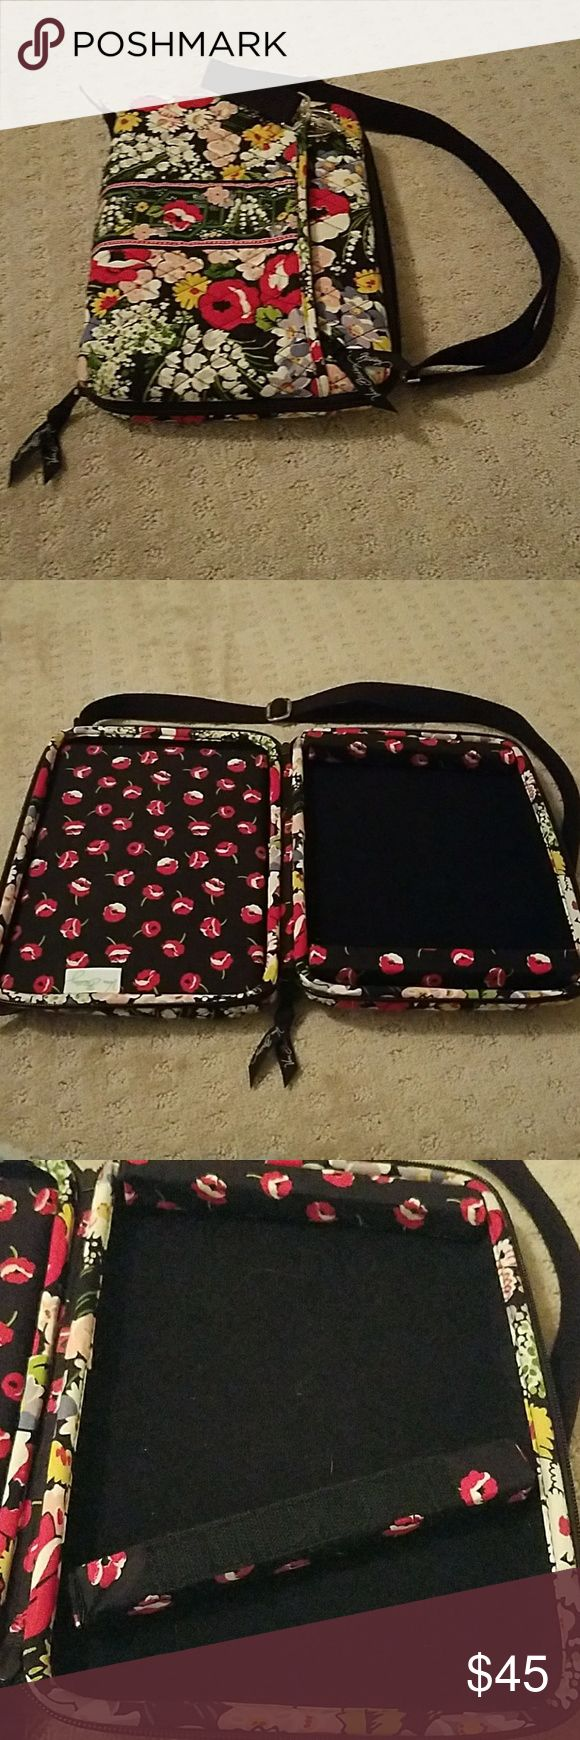 Vera Bradley tablet case Purchase this Vera Bradley tablet bag at the Vera Bradley store. It has removable foam supports on the inside. It is an excellent condition. The strap can be removed and it has two pouches on the outside. One is it one is not. Padded for extra protection Vera Bradley Accessories Tablet Cases